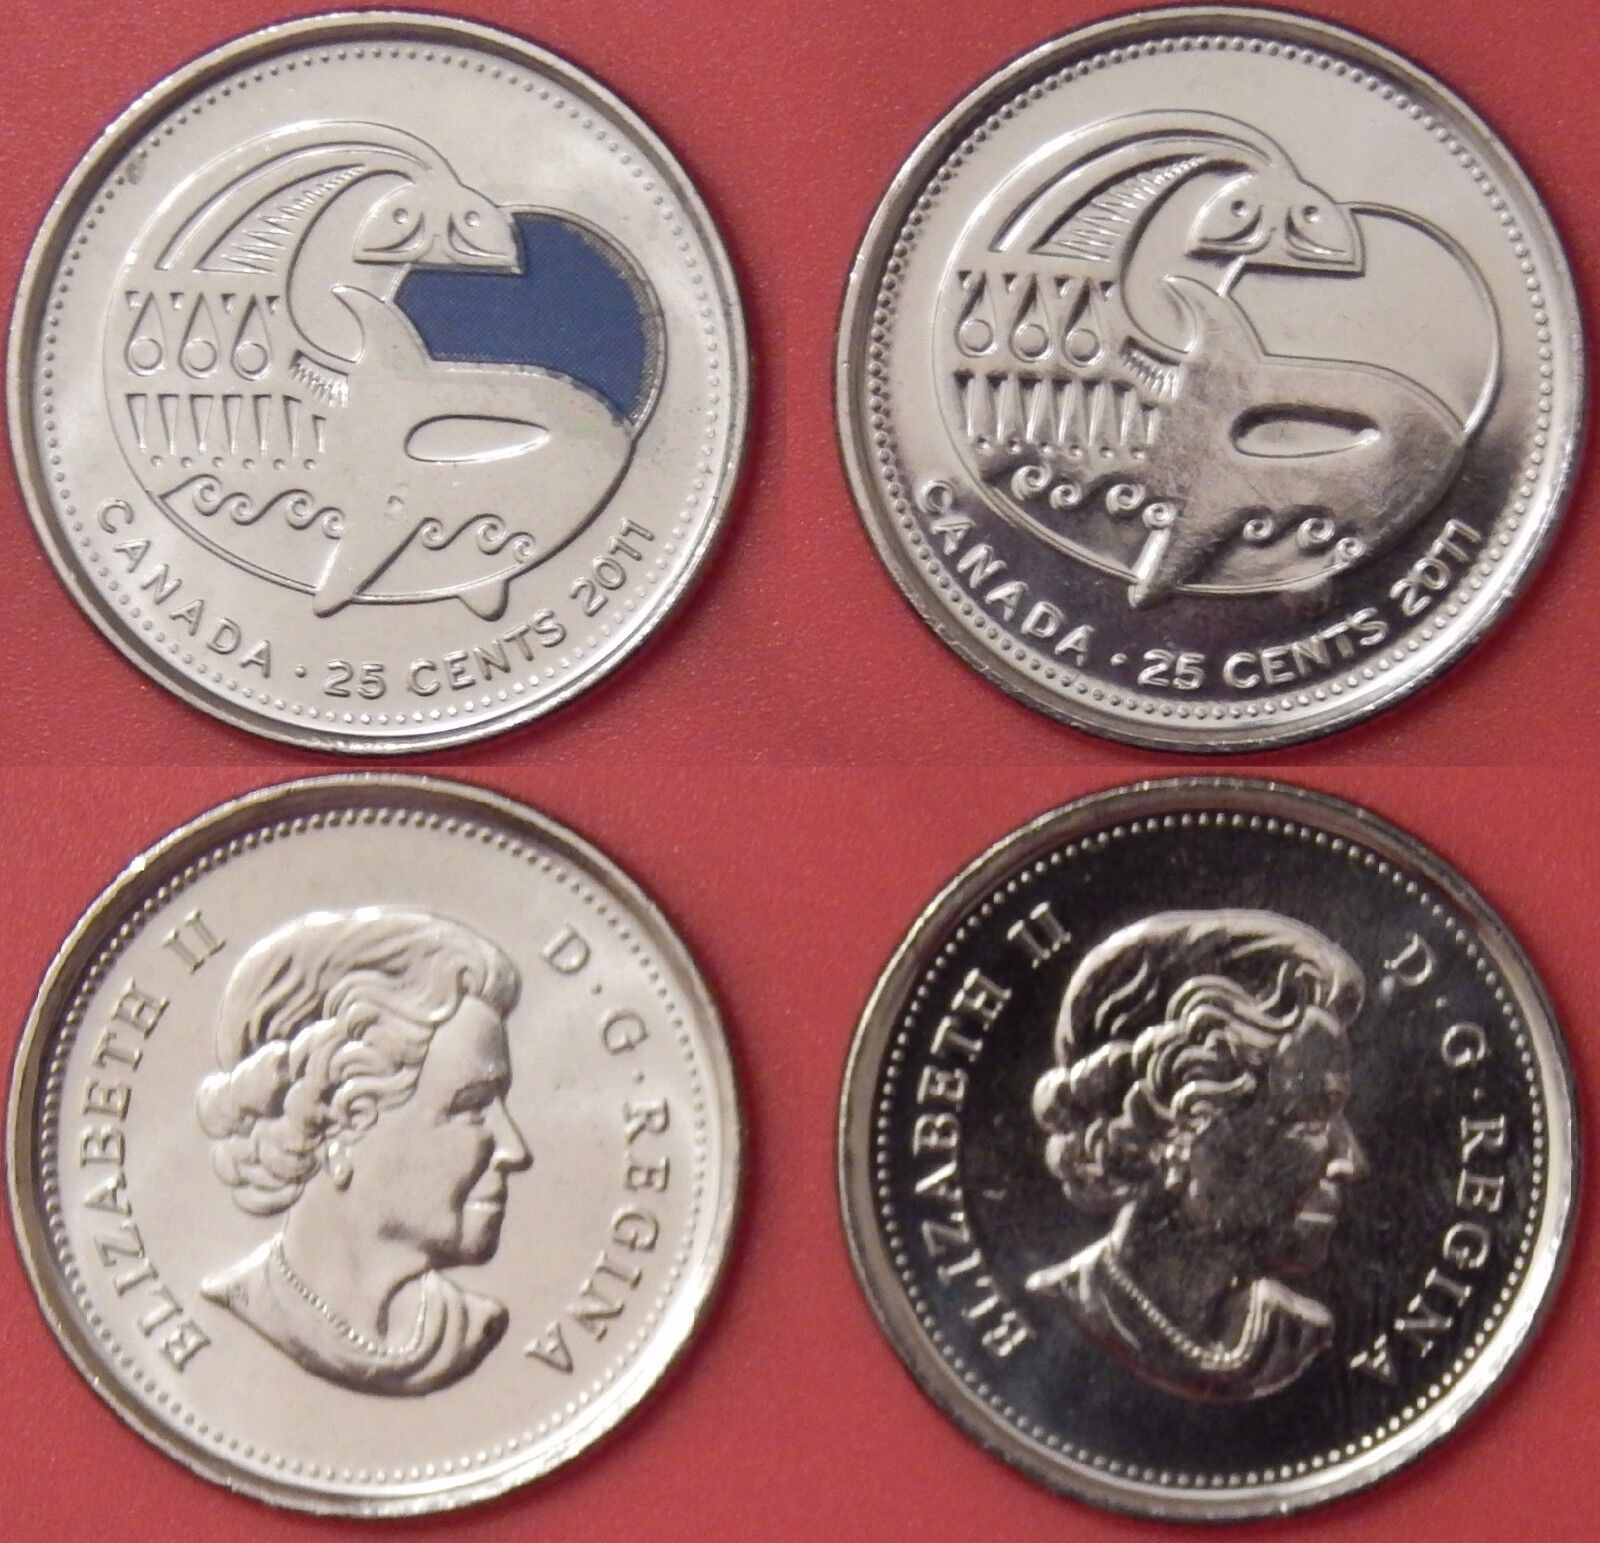 Brilliant Uncirculated 2011 Canada Whale Color & Plain 25 Cents From Mint's Roll